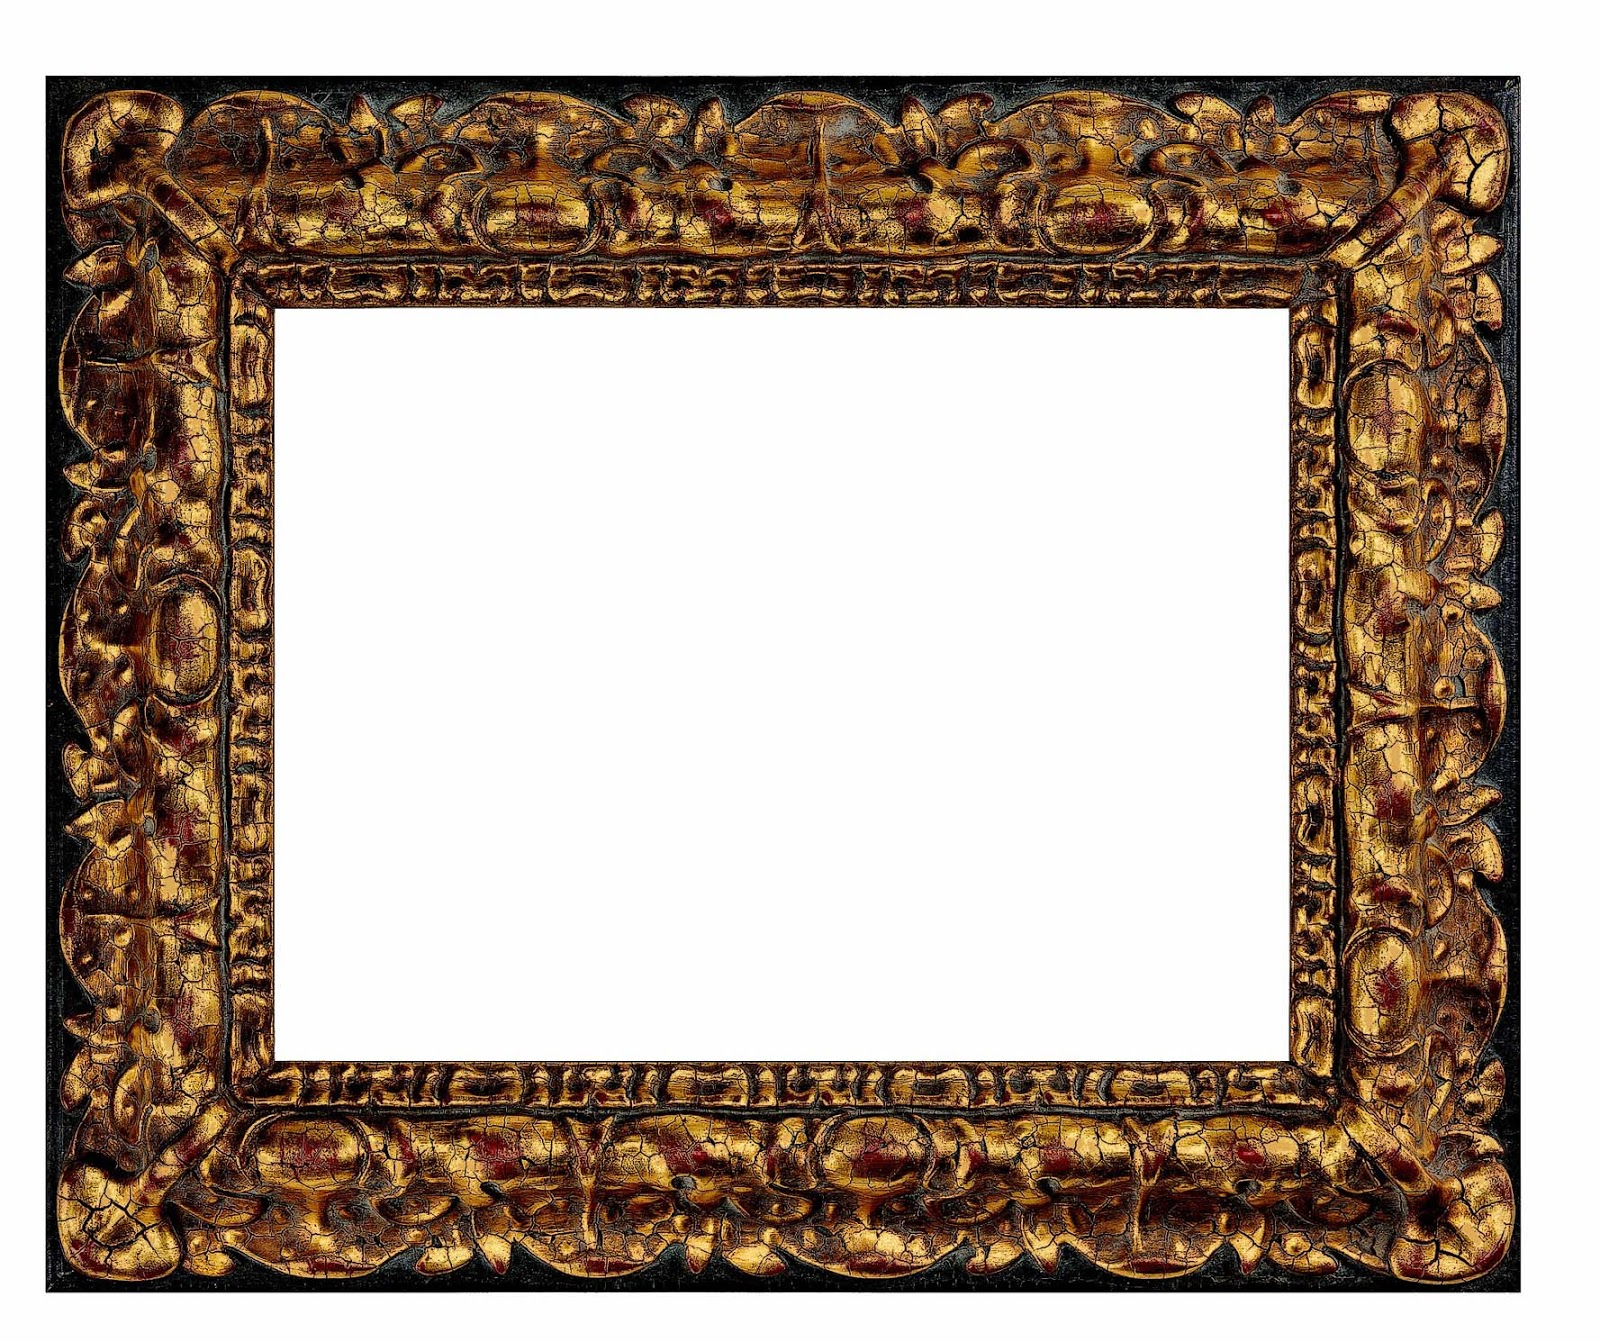 Frames as Art